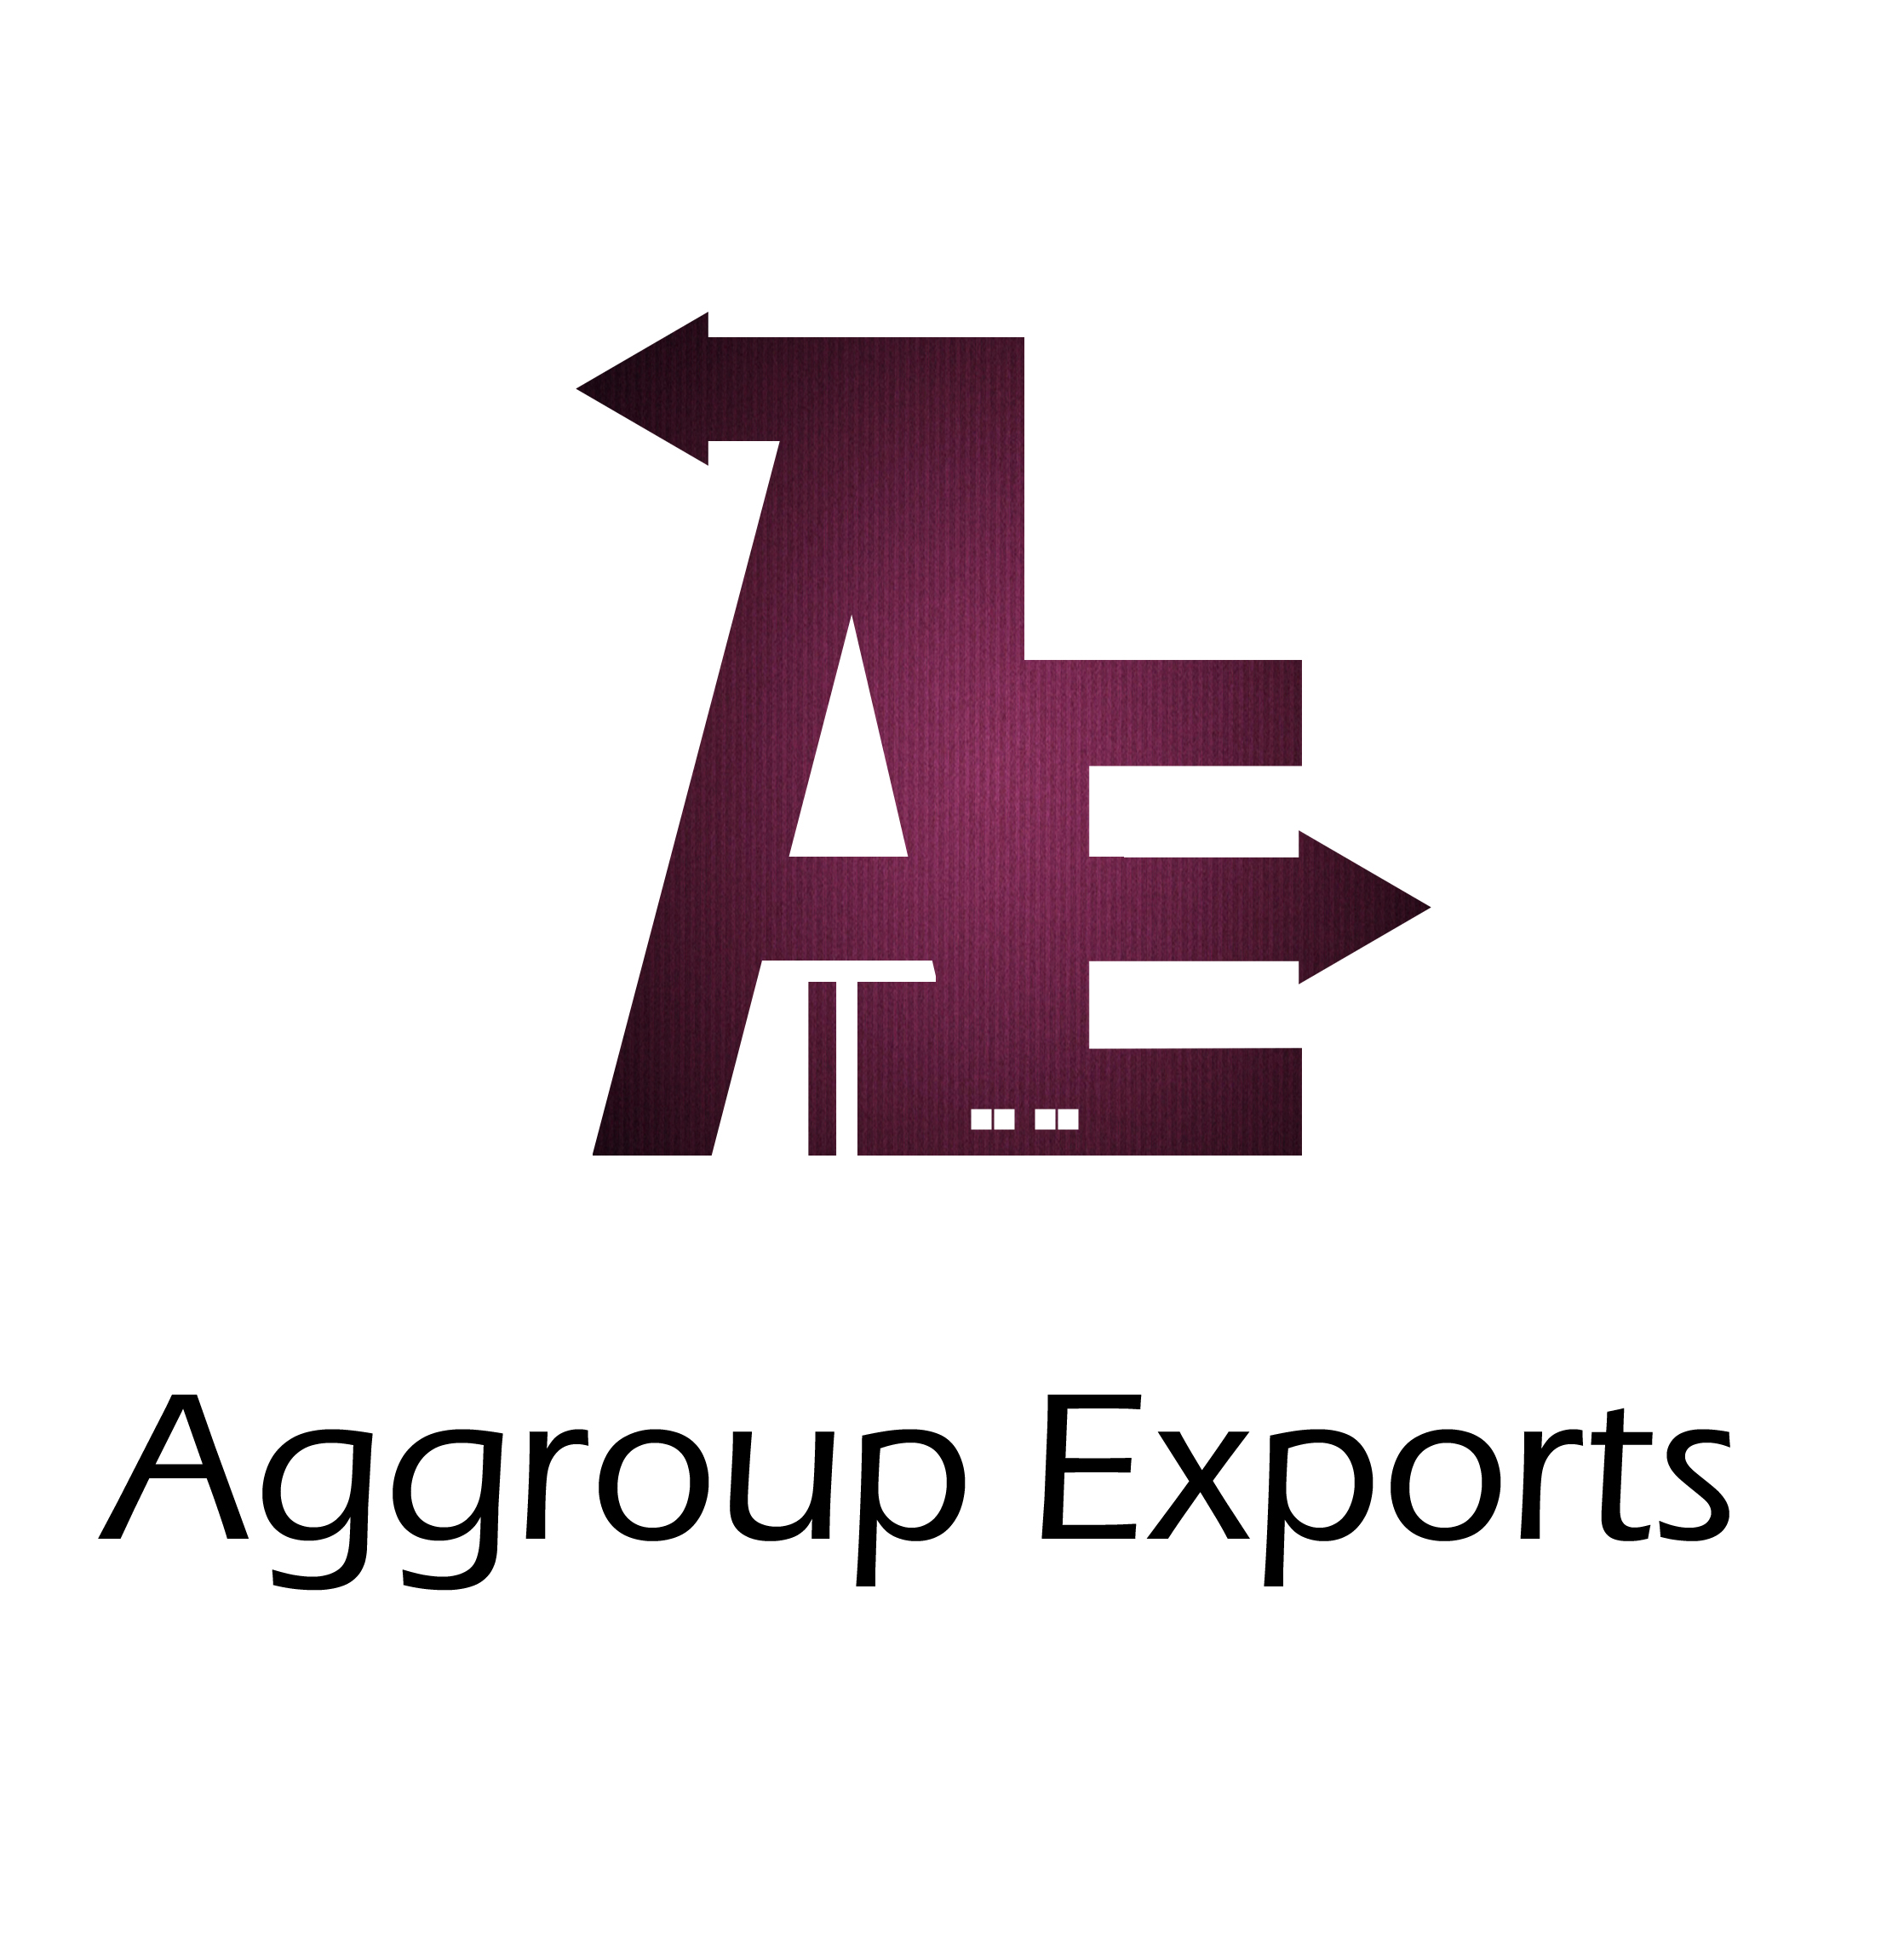 Aggroup Exports